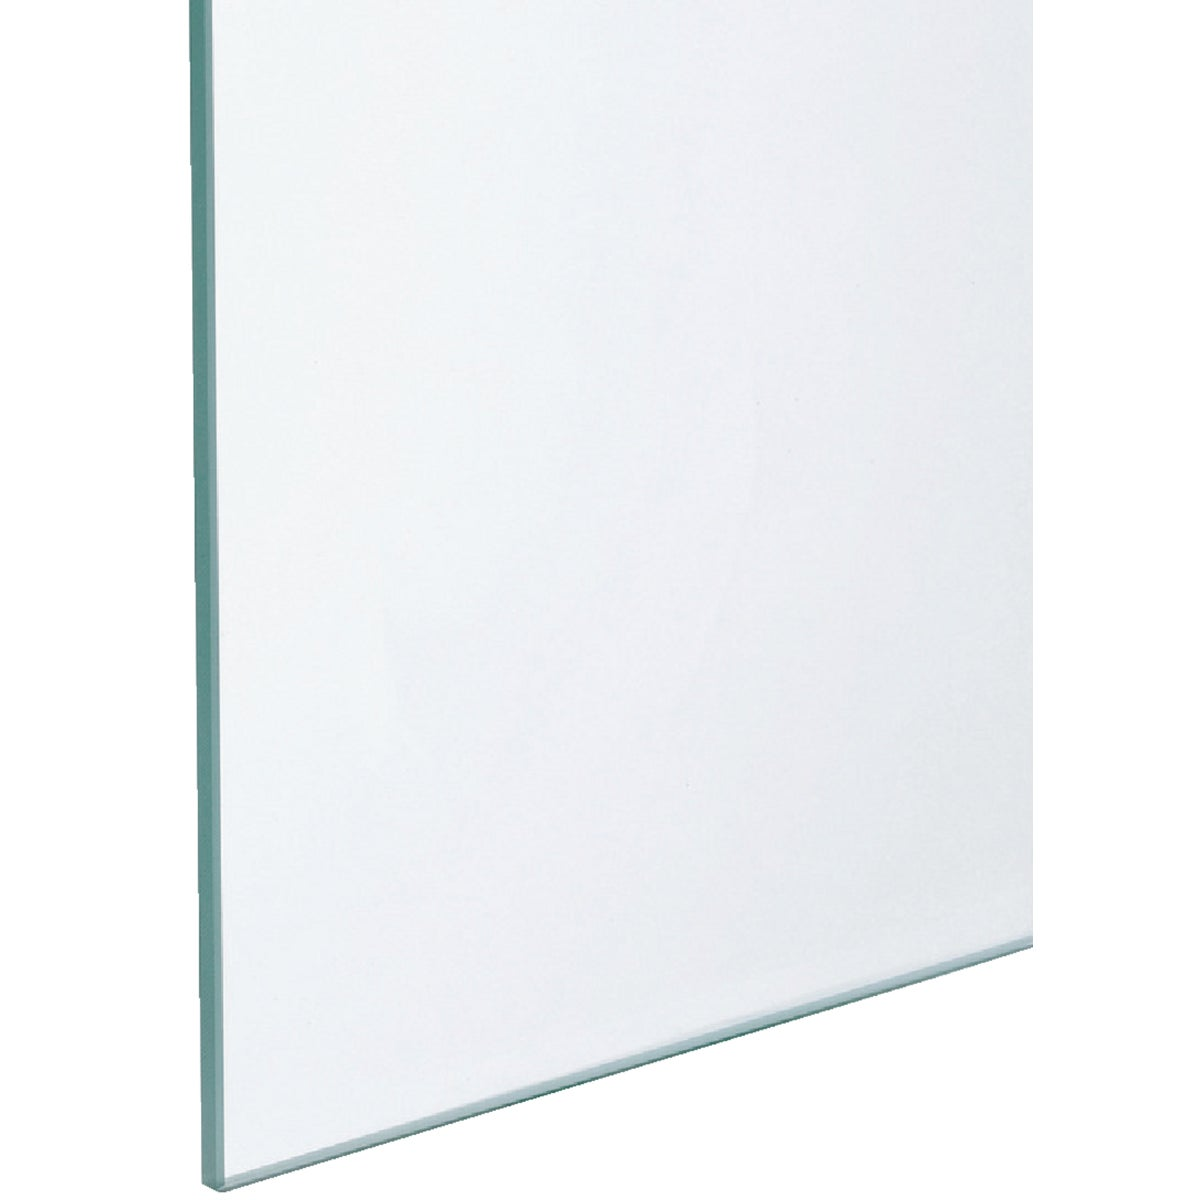 24X36DSB WINDOW GLASS 8